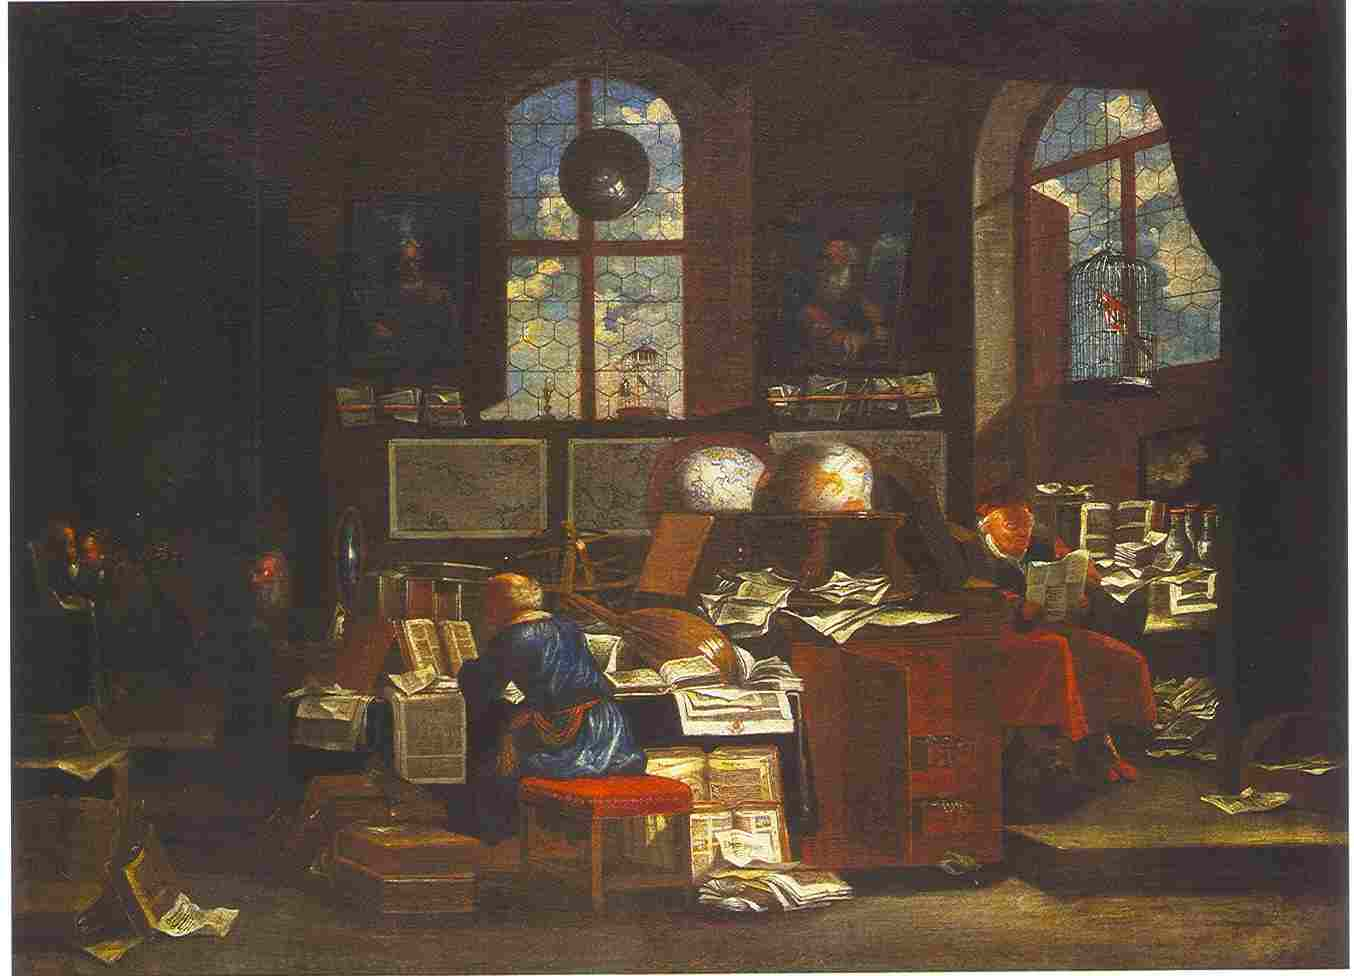 Johan Michael Bretschneider, In the scholars' study, Wroclaw